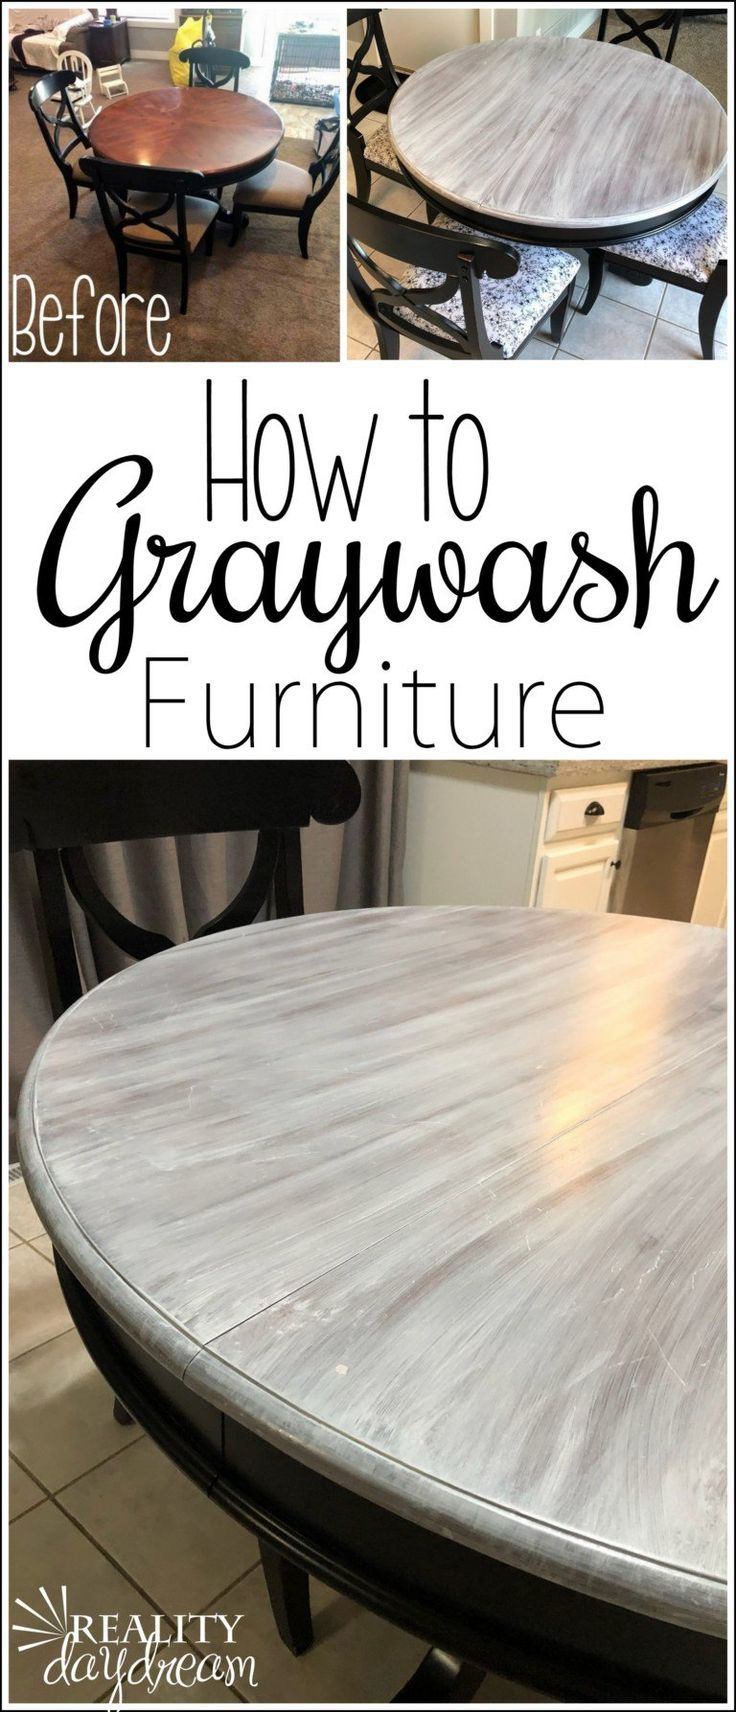 Bauernhaus Graywash-Technik - #Bauernhaus #furniture #GraywashTechnik #apartmentdiy